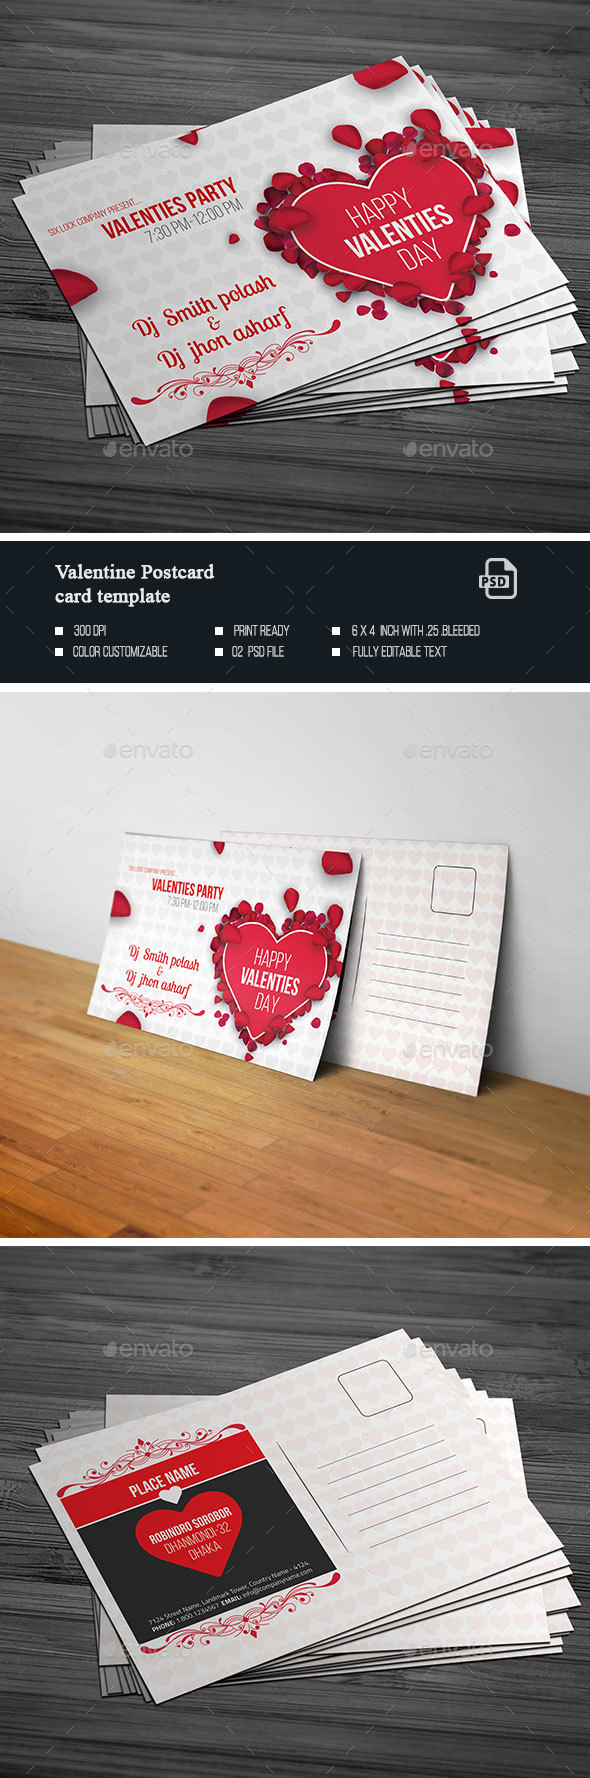 Valentine Post Card - Cards & Invites Print Templates